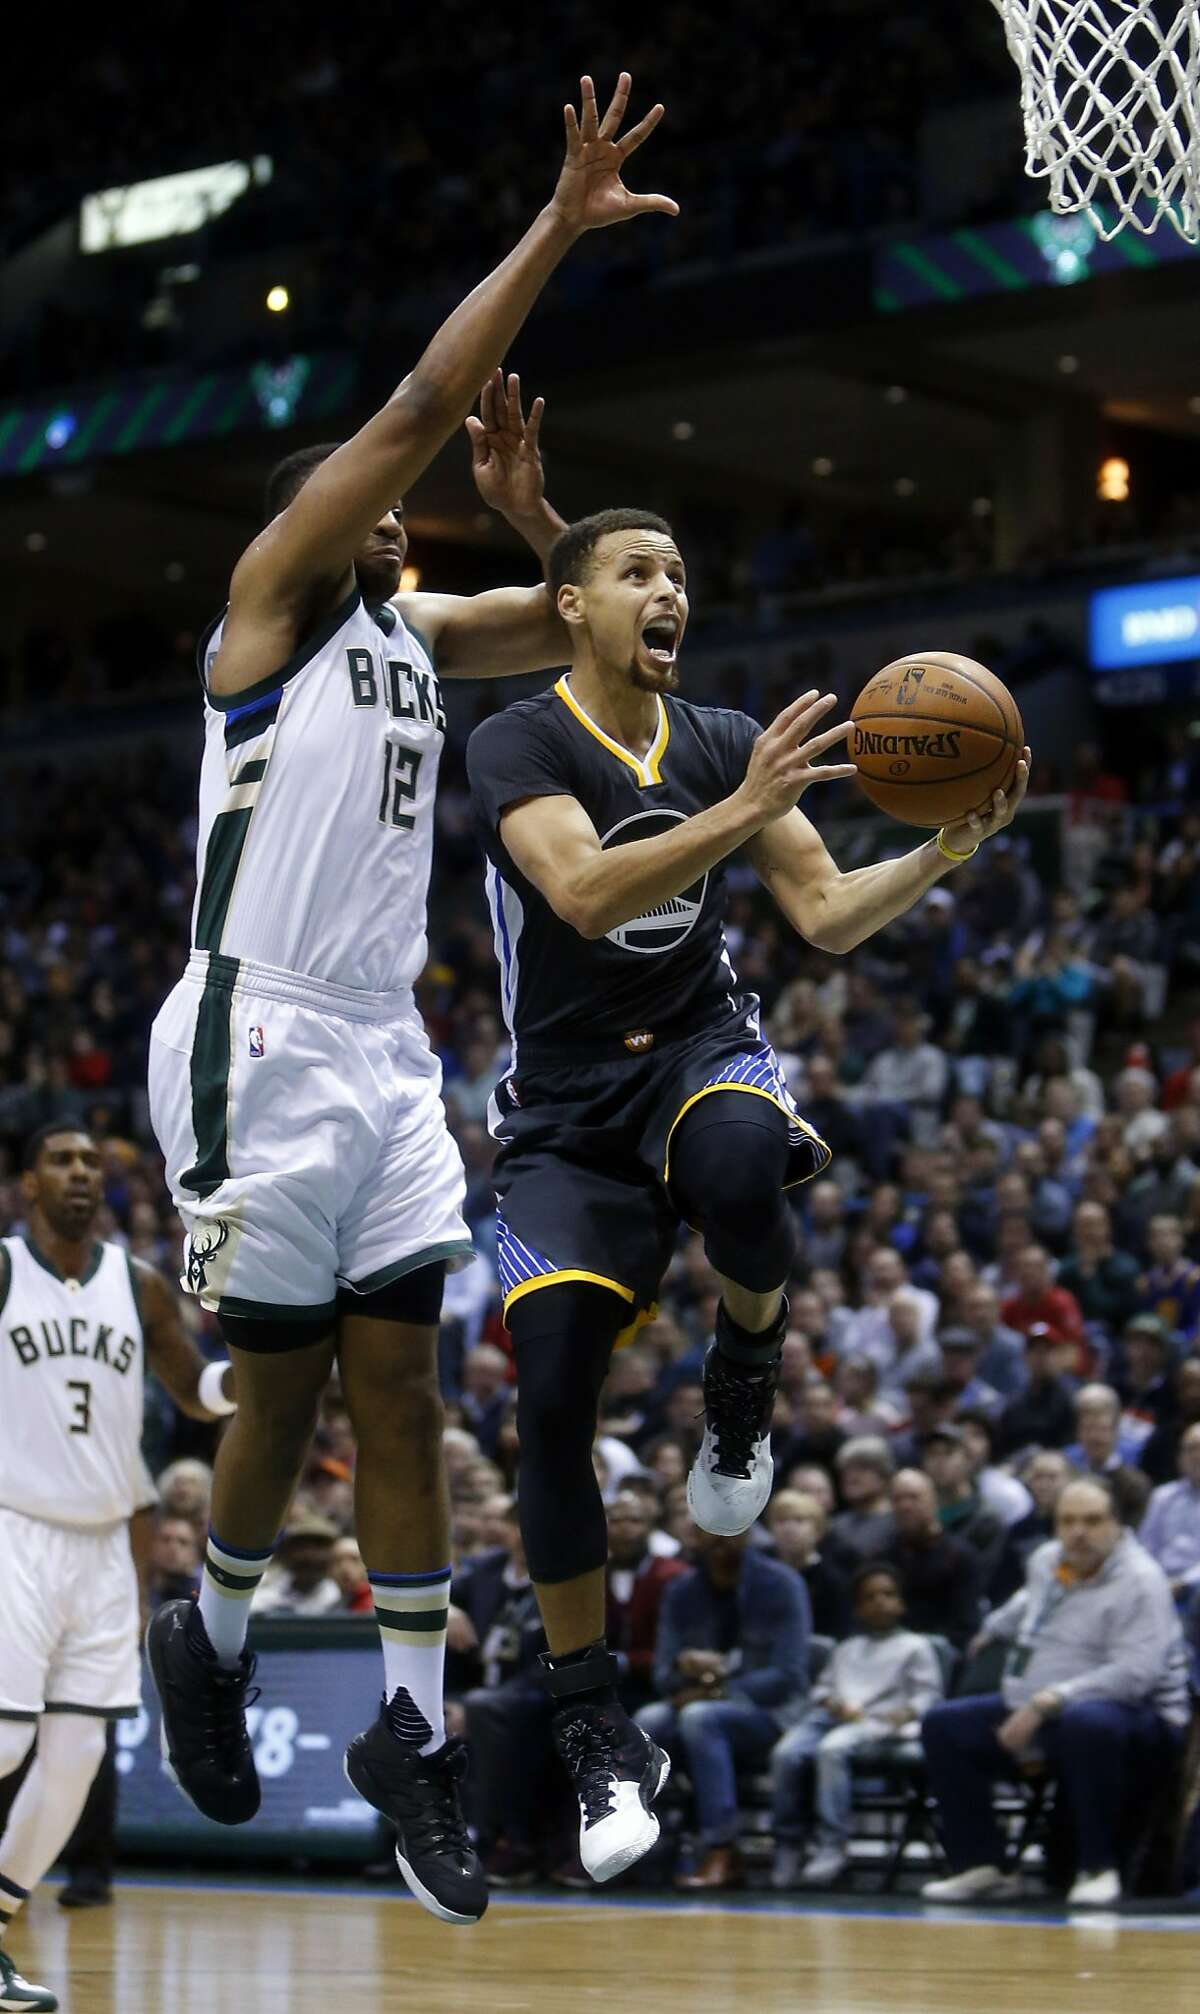 Golden State Warriors' Stephen Curry during Milwaukee's Bucks' 108-95 win in NBA game at BMO Harris Bradley Center in Milwaukee, WI on Saturday, December 12, 2015.